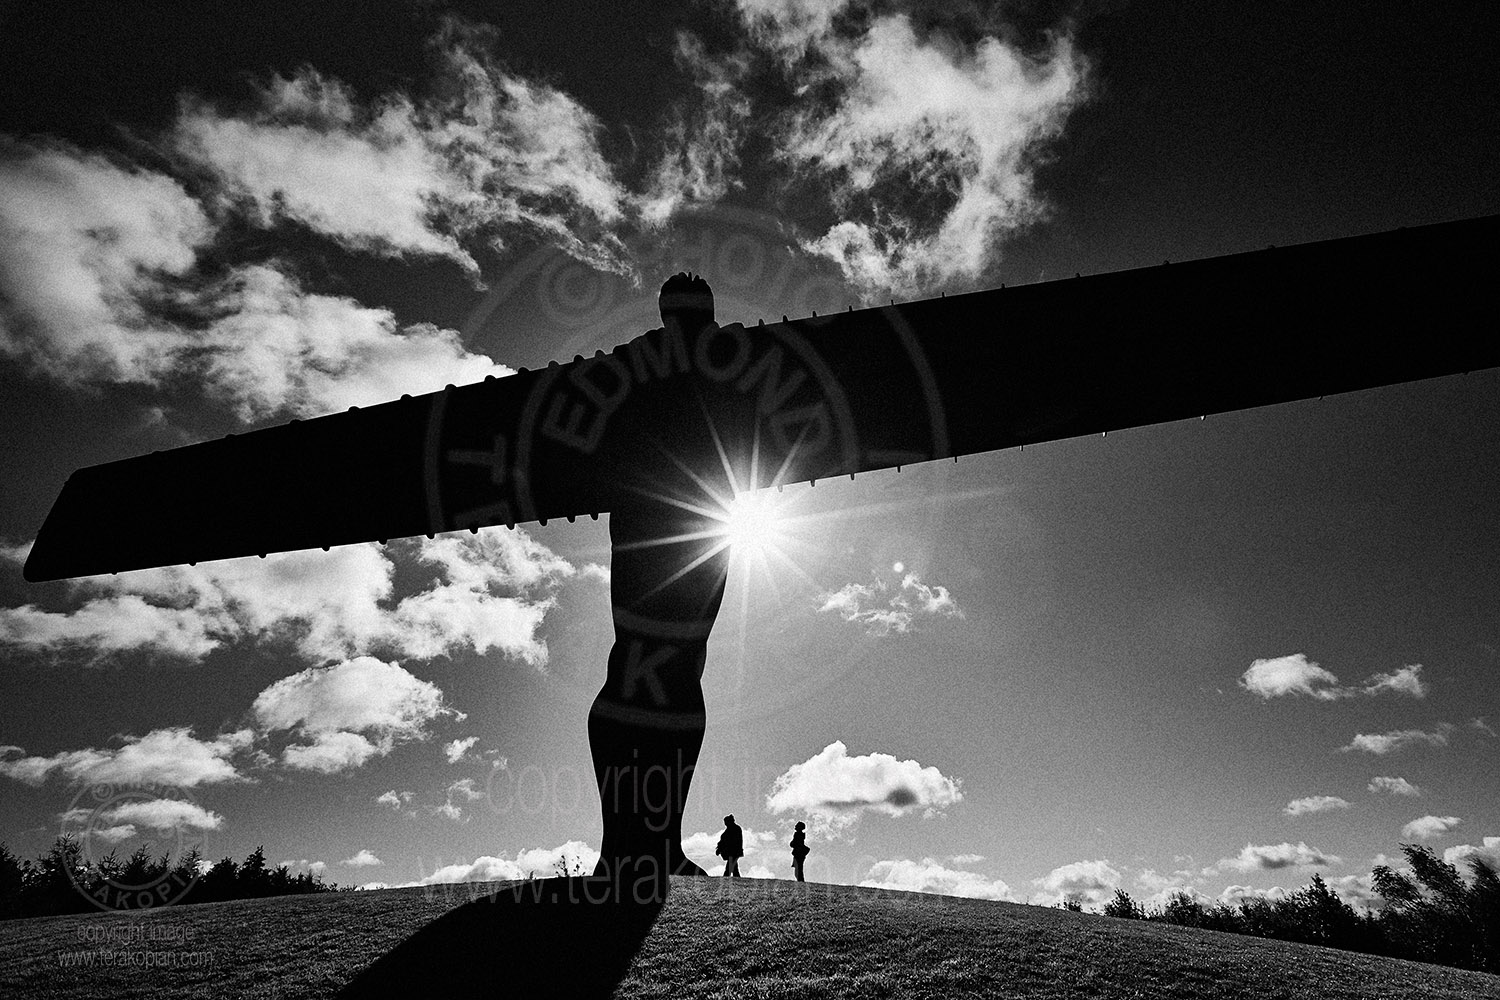 The Angel of the North sculpture by Antony Gormley, Gateshead, Tyne and Wear, England. September 11, 2012. Photo: ©Edmond Terakopian